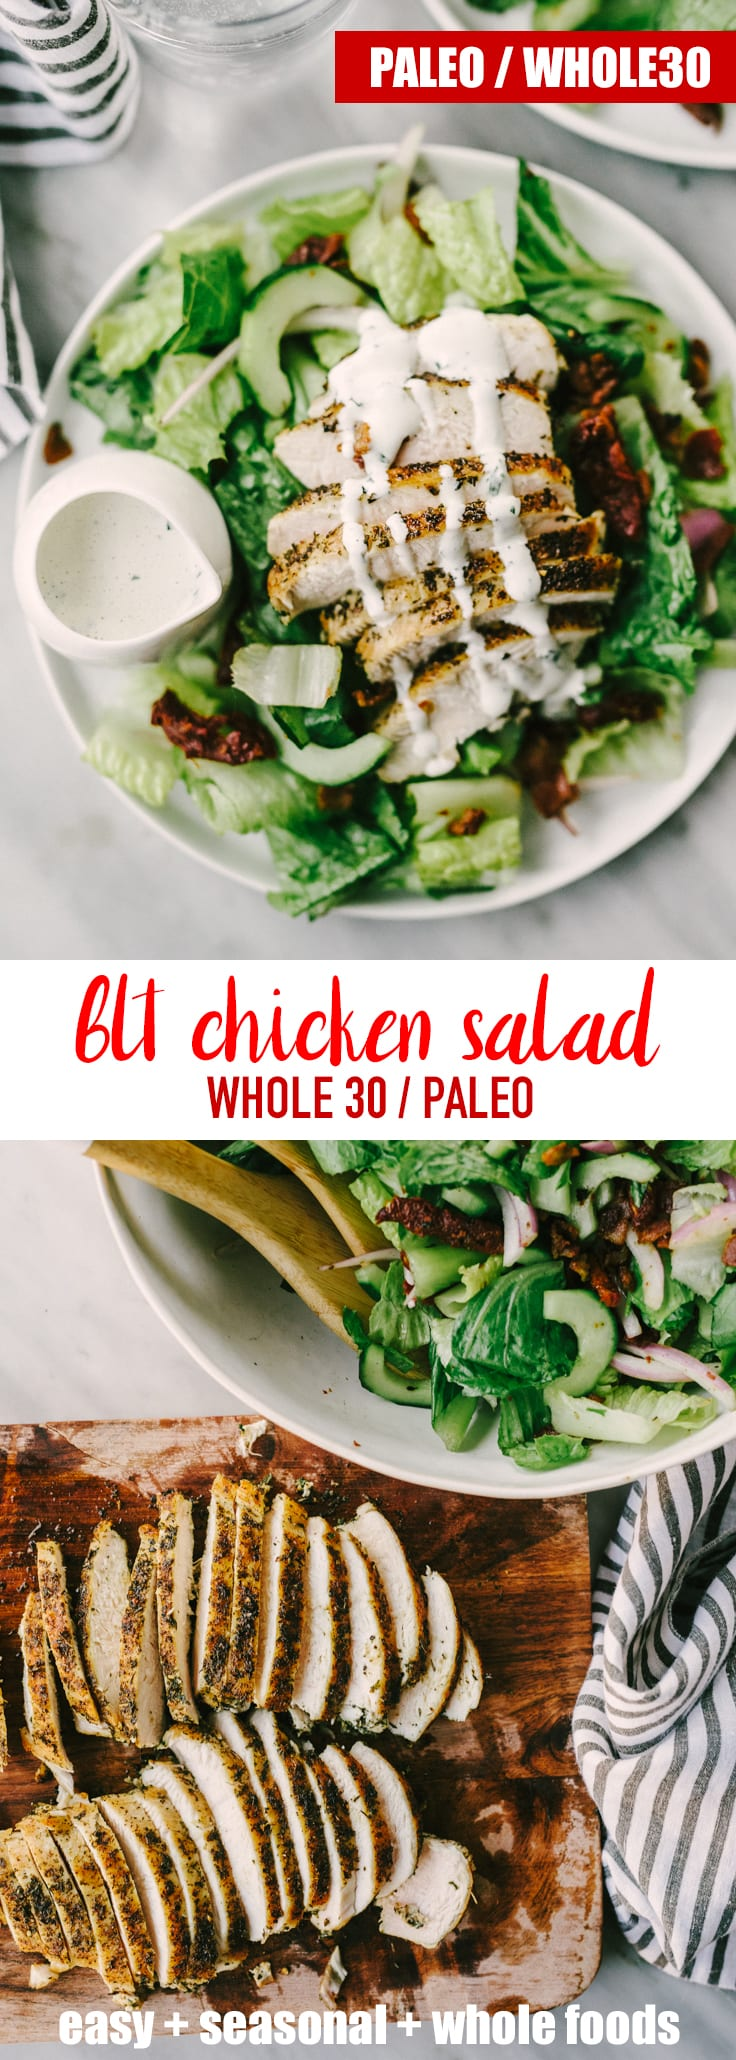 This Whole30 BLT chicken salad is a fast and easy weeknight dinner or packed lunch that you'll want to come back to again and again. It's tangy, crunchy, filling and ready in under 30 minutes. Easy, delicious Whole30 dinner. Fast and filling Whole30 packed lunch. #whole30 #paleo #blt #chickensalad #realfood #wholefoods